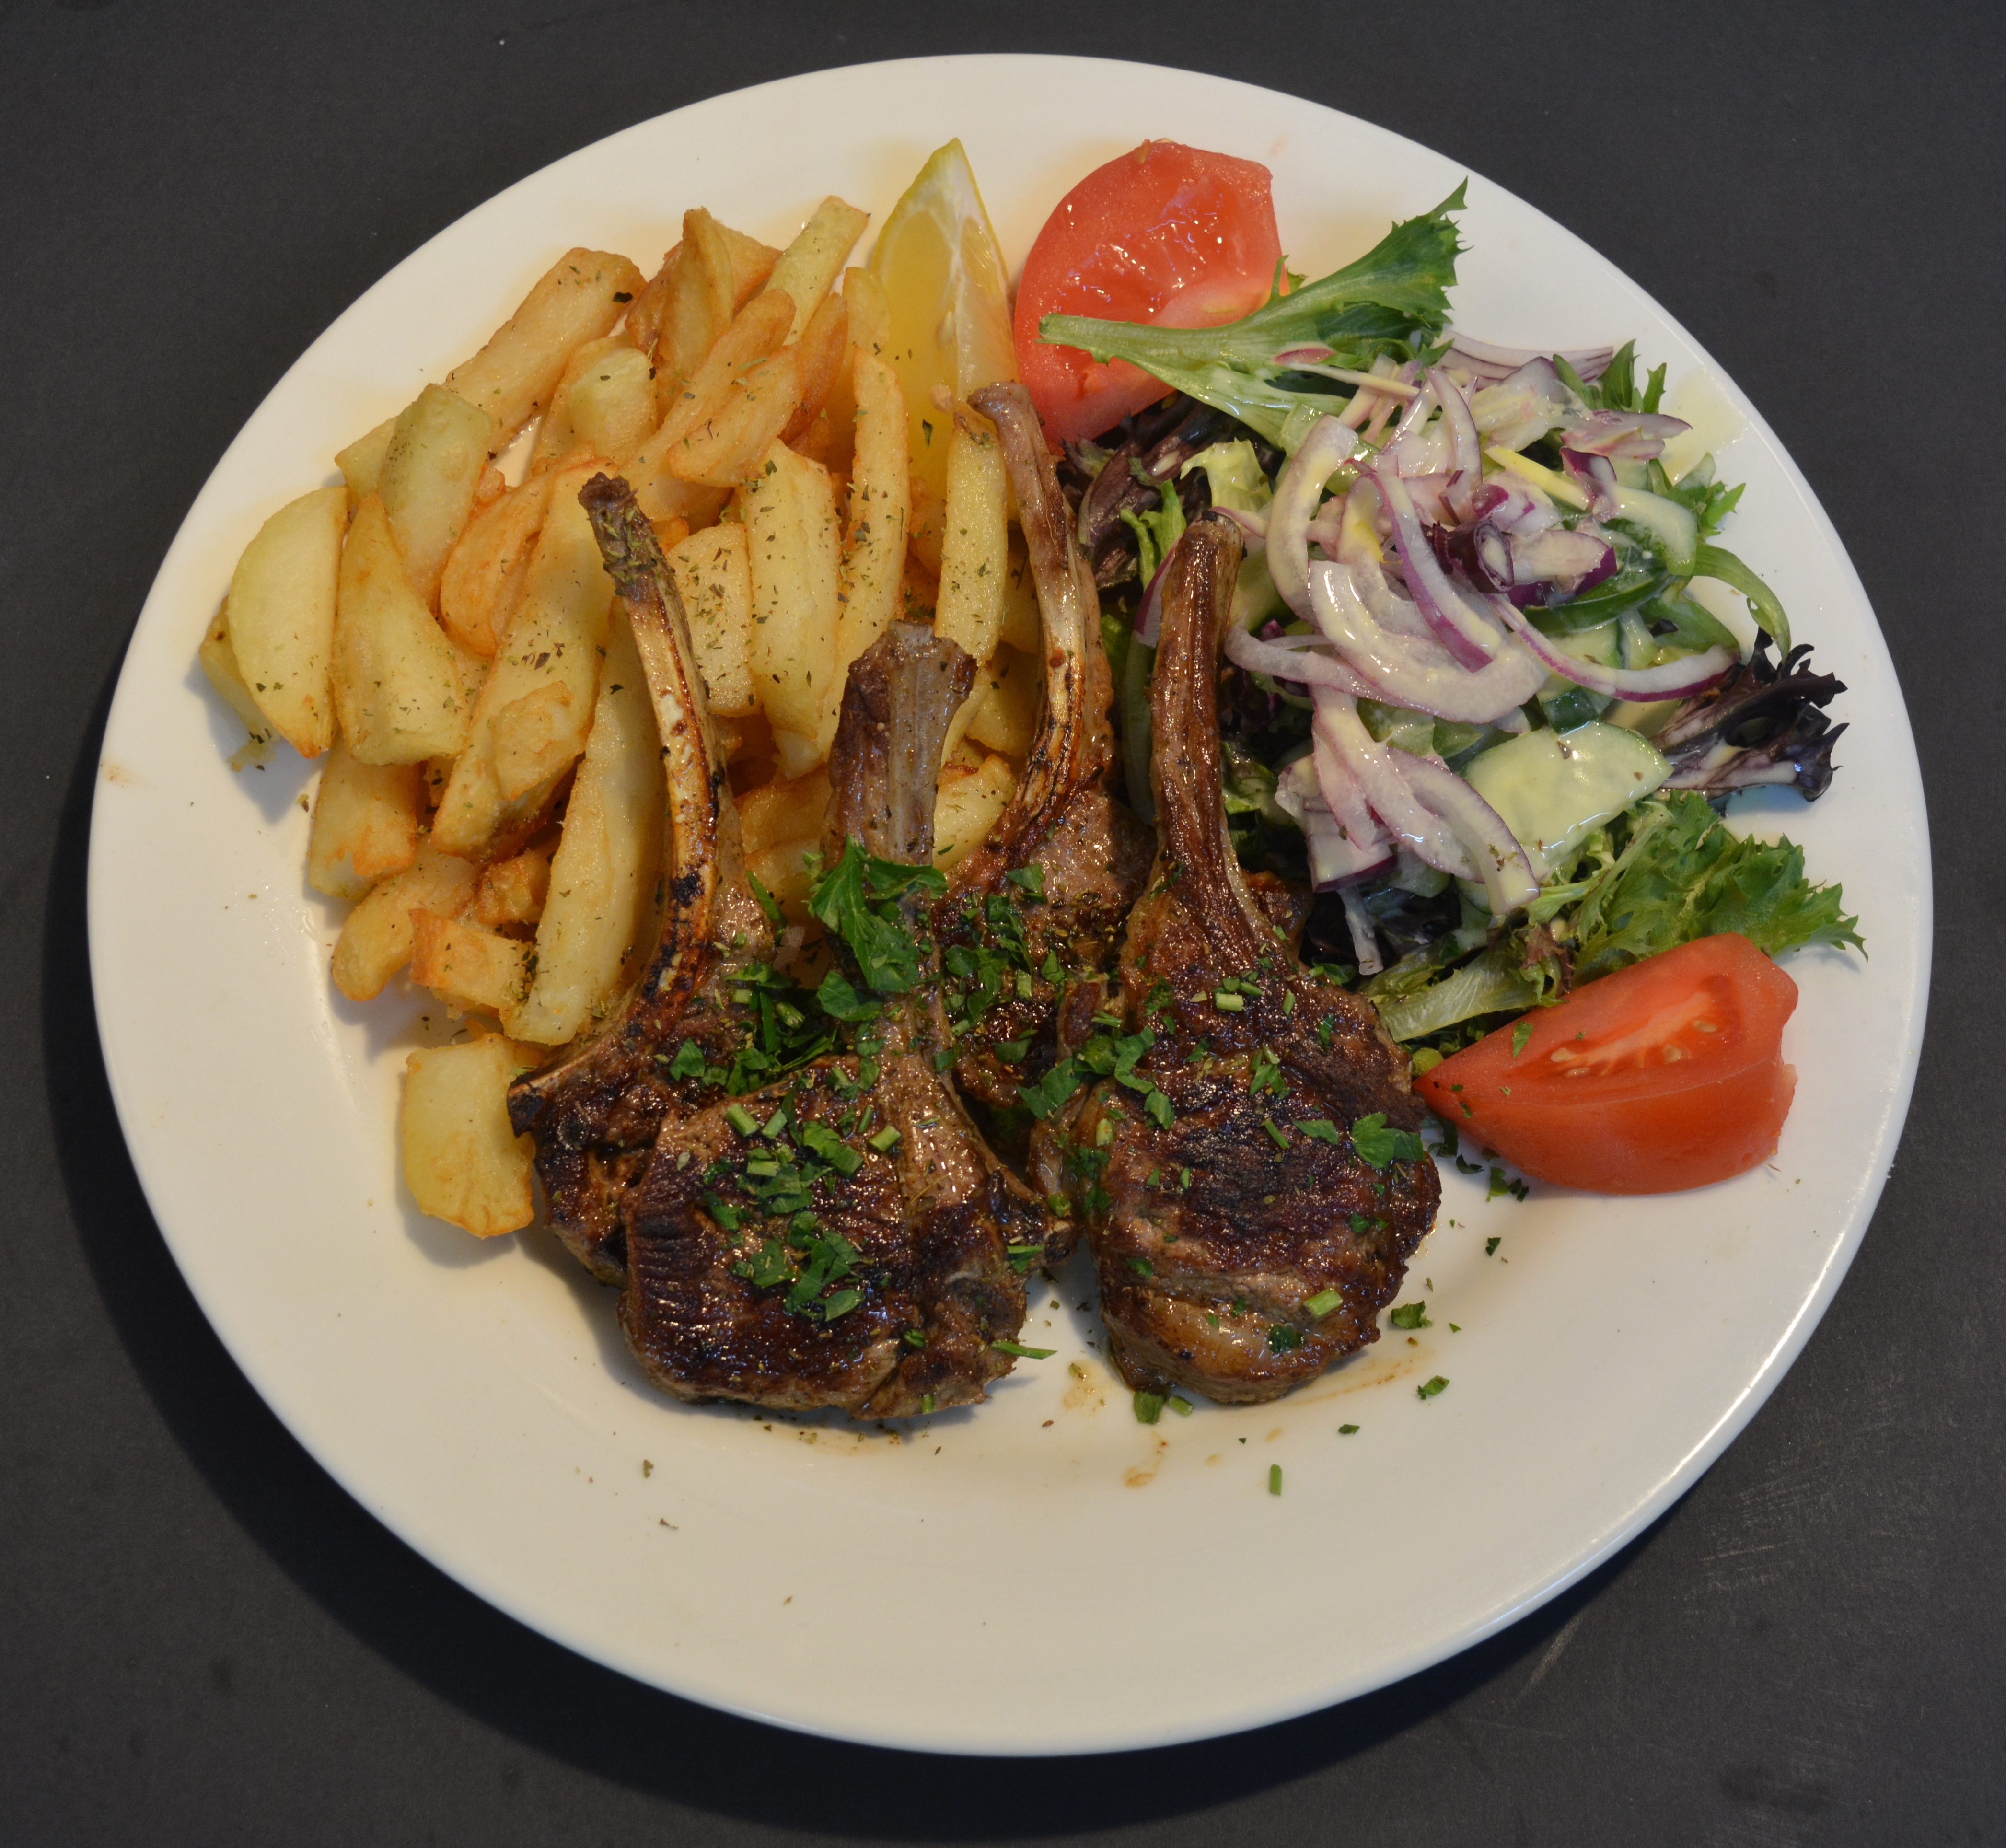 Grilled Lamb Cutlets served with homemade chips and salad or steamed veggies.